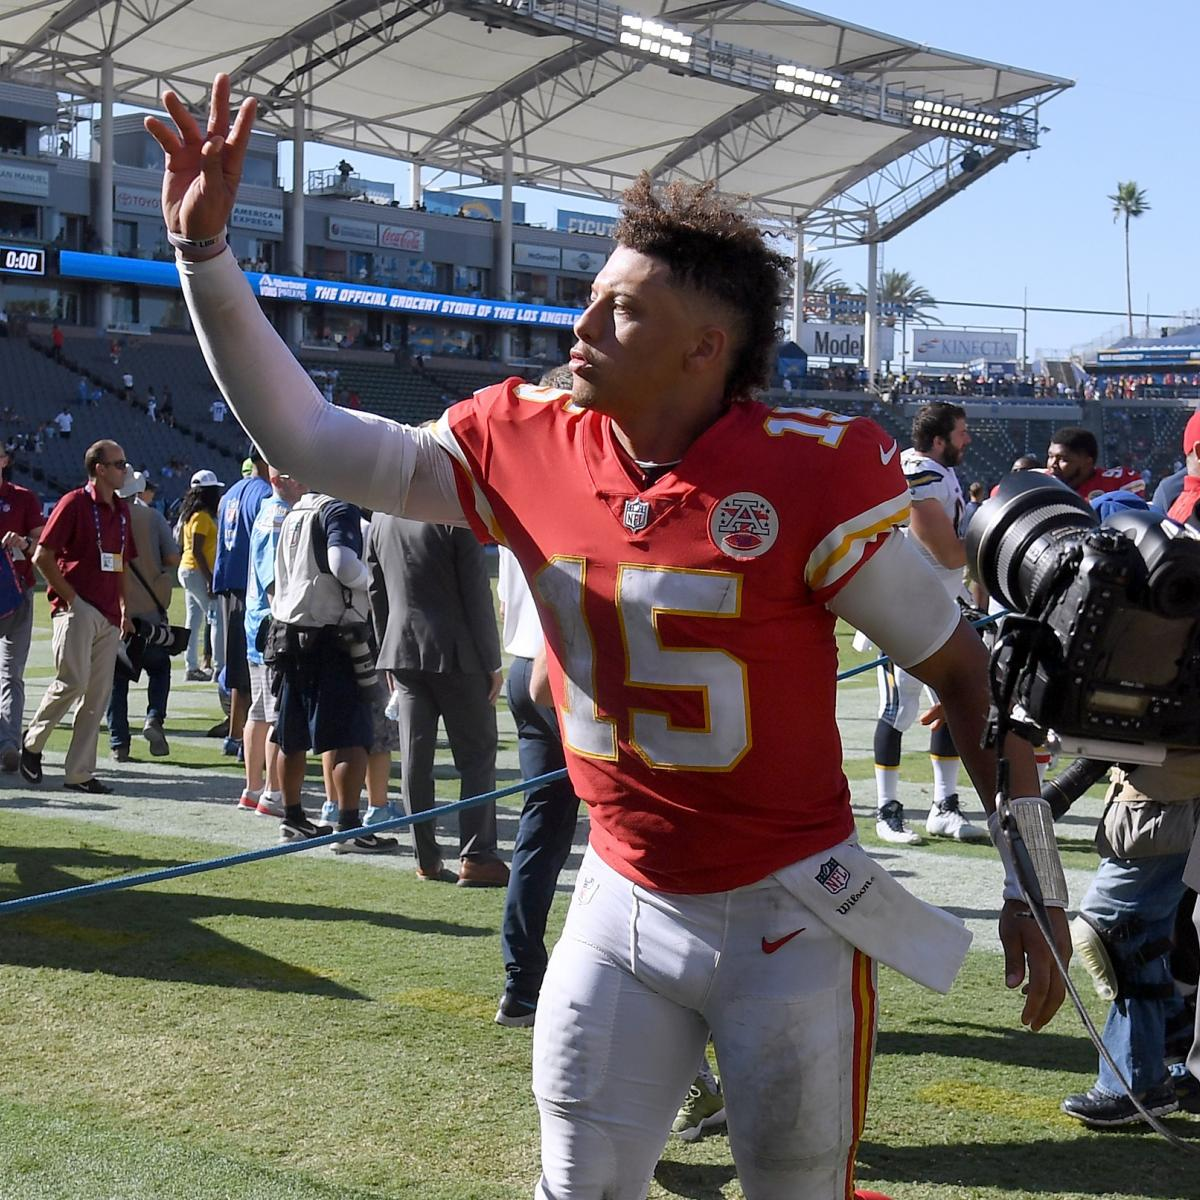 8f0942826dc Pat Mahomes, Tyreek Hill Are Taking over the NFL as Next Superstar Tandem